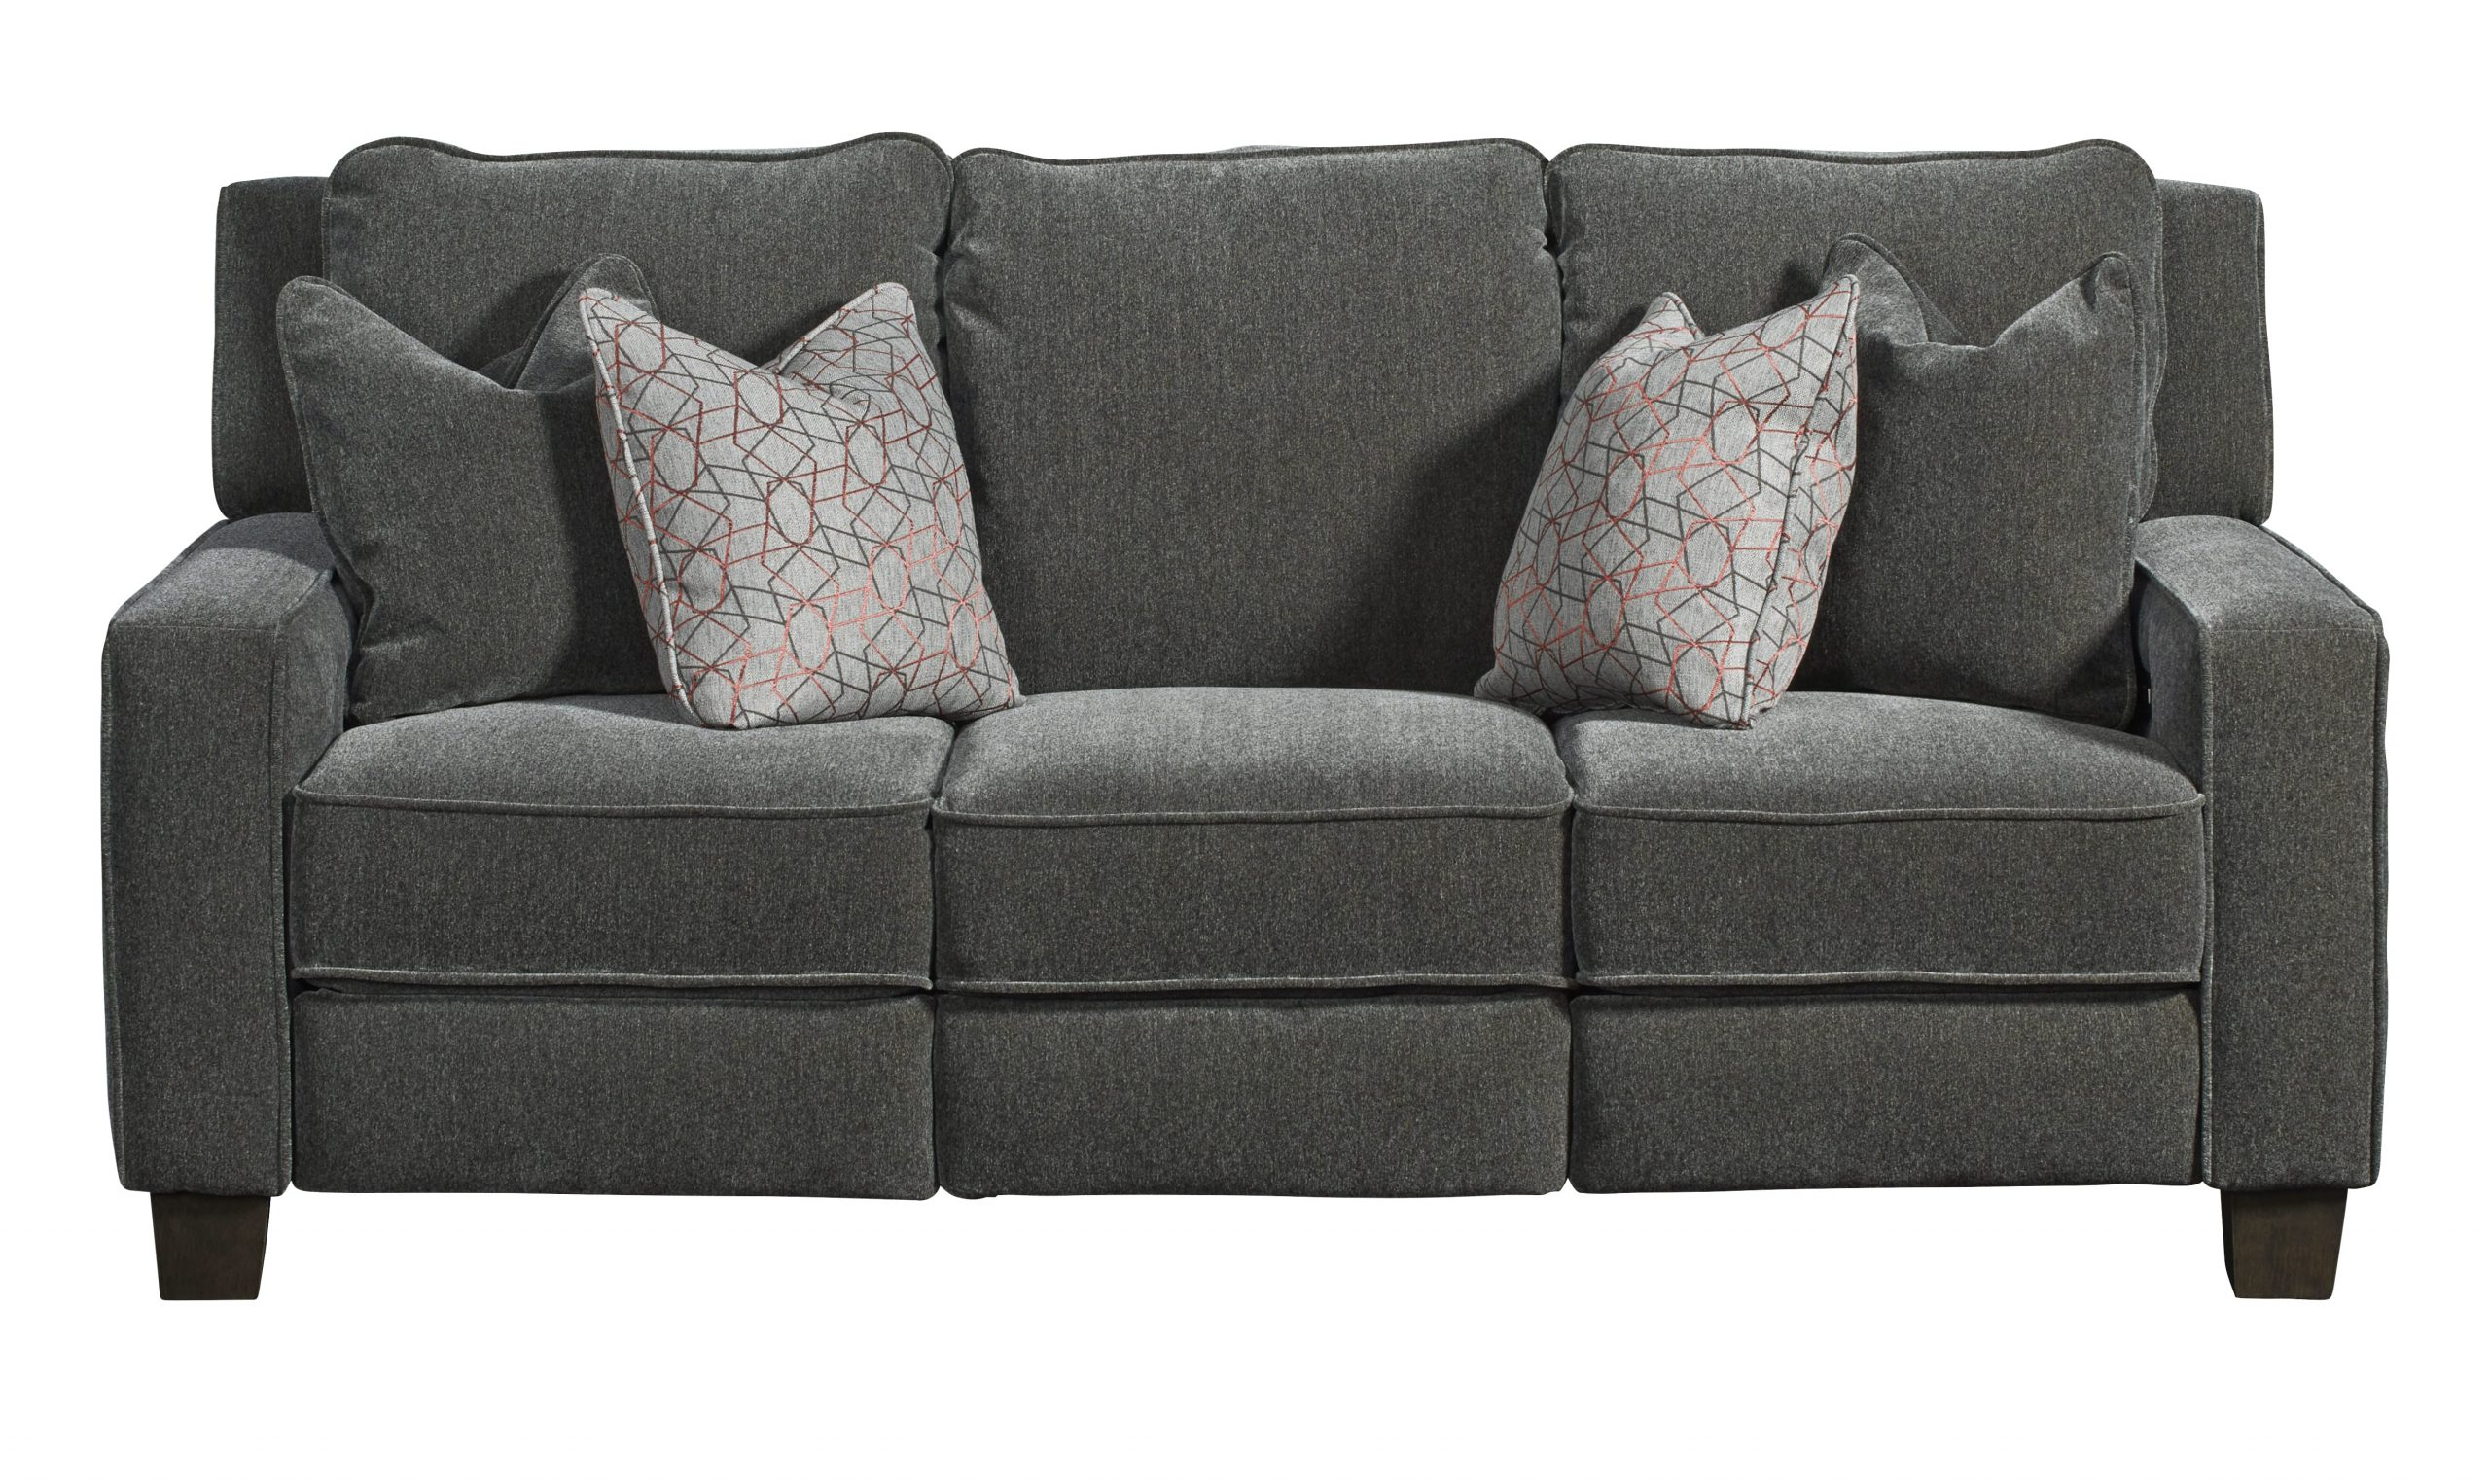 685-west-end-in-229-14-mohair-charcoal-390-11-bangle-sofa-sweep-smlr-min-scaled